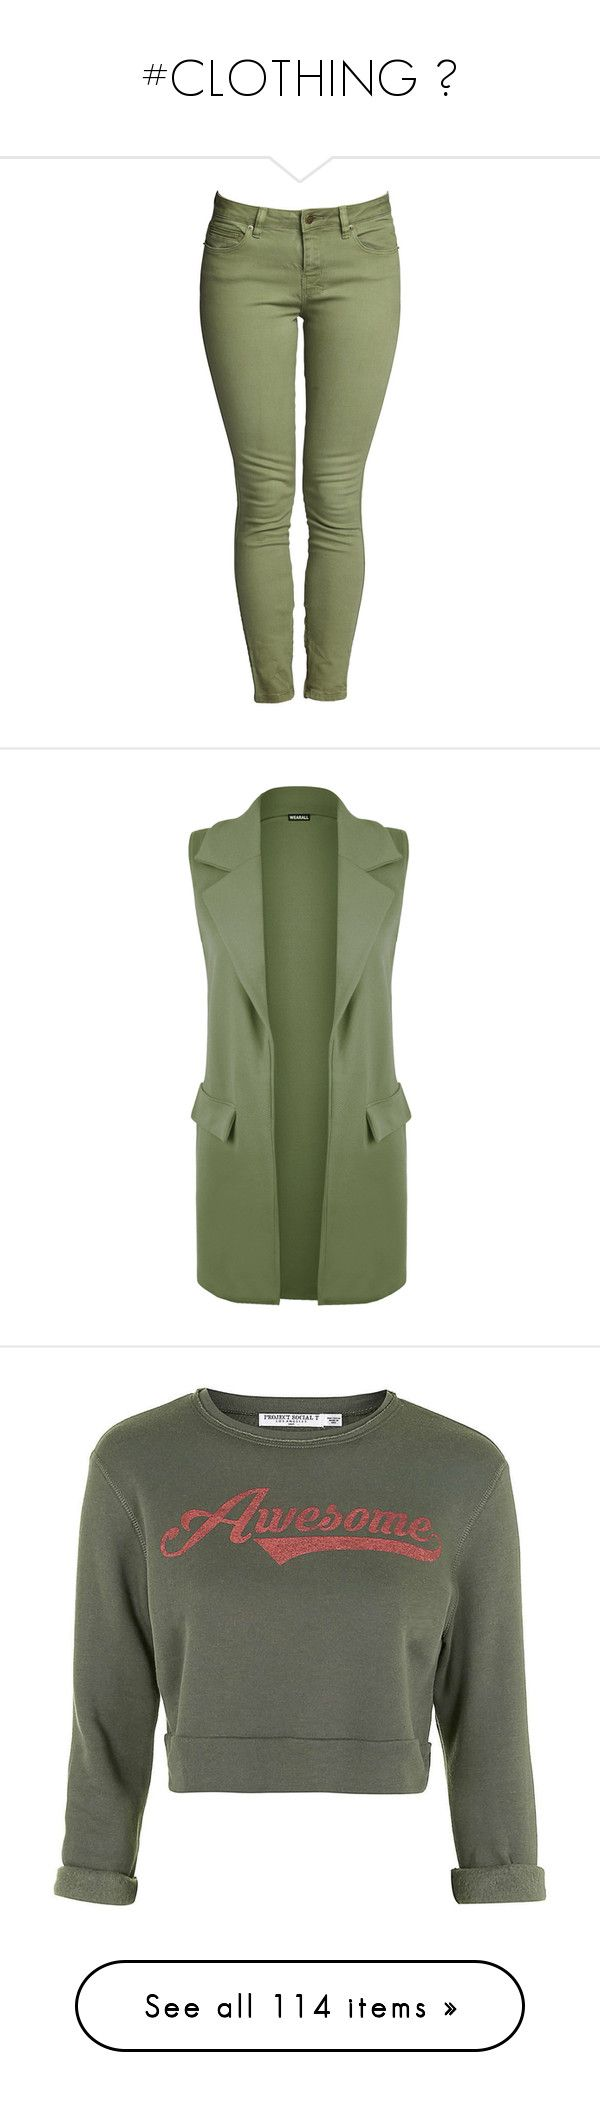 """""""#CLOTHING ♥"""" by valenpocitovillarroel on Polyvore featuring tops, t-shirts, shirts, blusas, military green, military t shirts, sleeveless tee shirts, round collar shirt, green t shirt y balmain t shirt"""